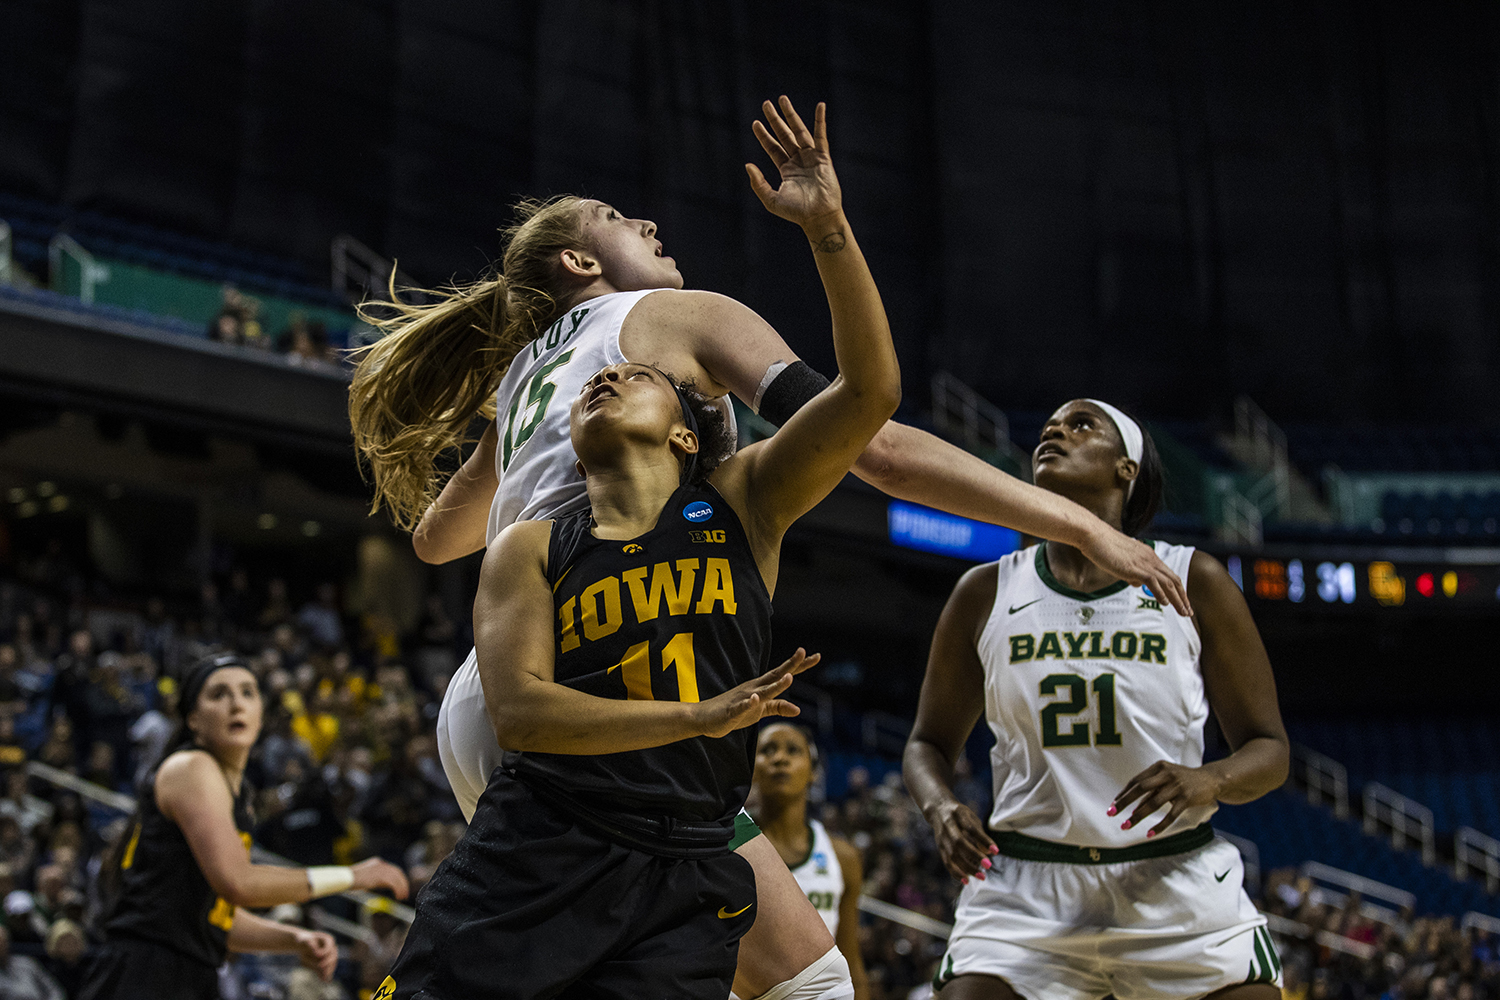 Iowa+guard+Tania+Davis+shoots+the+ball+past+Baylor+forward+Lauren+Cox+during+the+NCAA+Elite+8+game+against+Baylor+at+the+Greensboro+Coliseum+Complex+on+Monday%2C+April+1%2C+2019.+The+Bears+defeated+the+Hawkeyes+85-53.